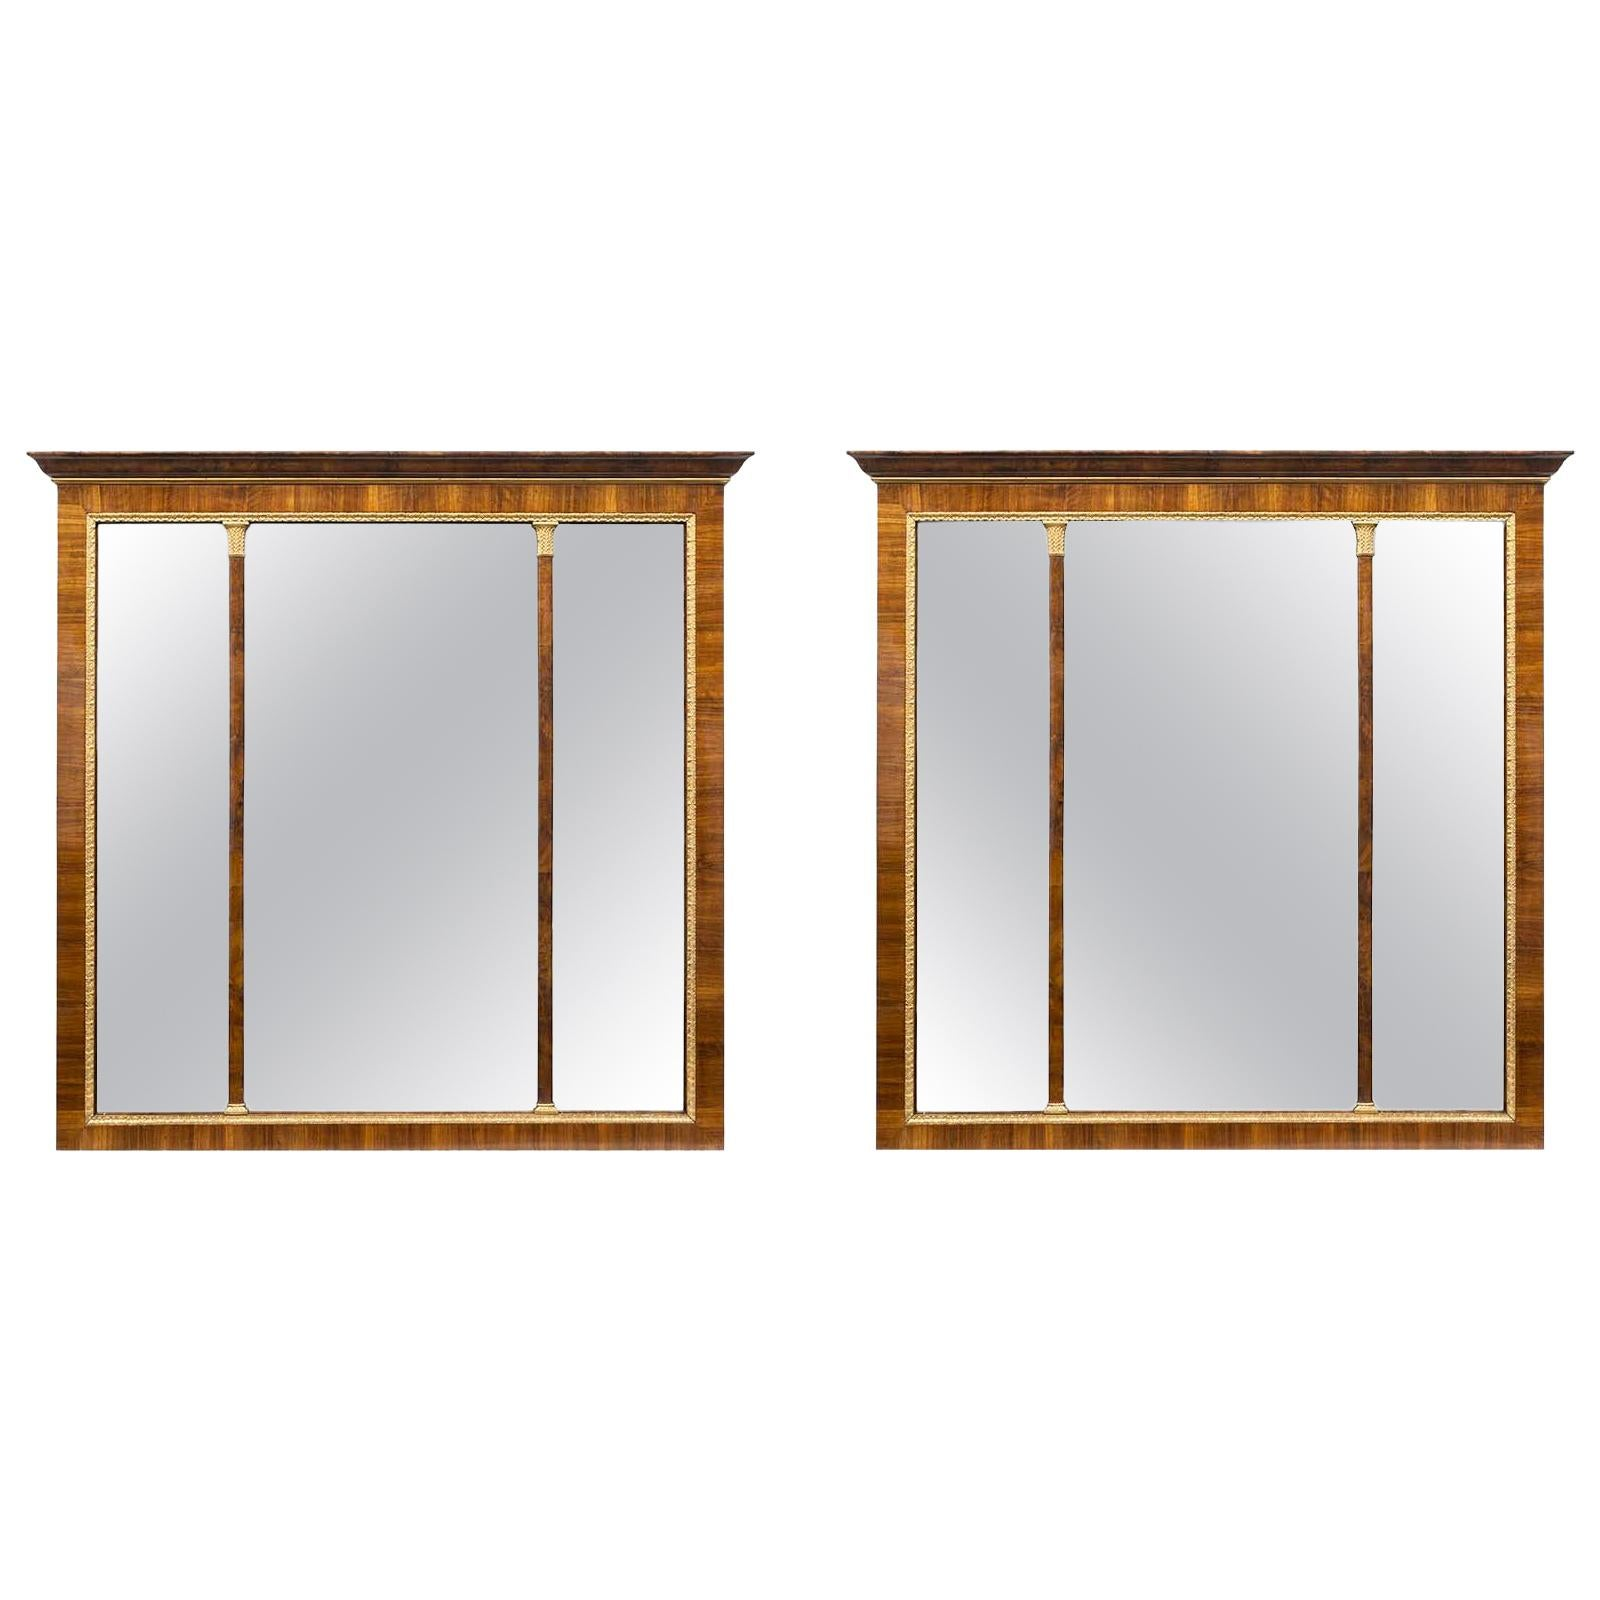 Pair of Italian 19th Century Neoclassical Style Walnut and Giltwood Mirrors